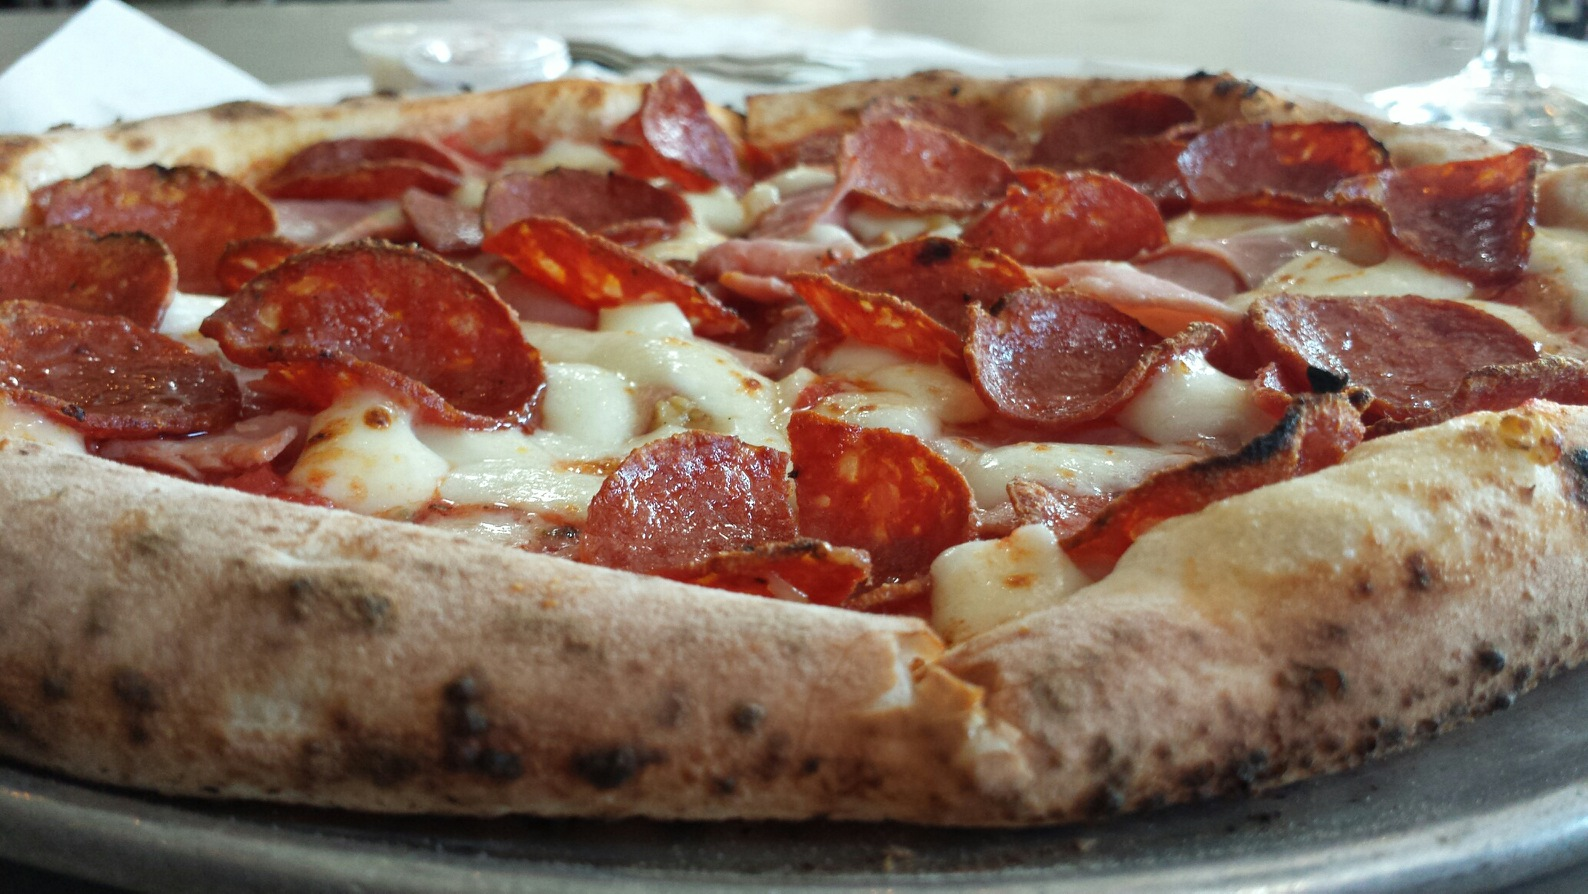 Patrizio Pizza which contains Pepperoni, Prosciutto Cotto, Roasted Garlic, Oregano, Chili Flakes, Mozzarella,Parmigiano Reggiano, and Crushed San Marzano Tomato Sauce .